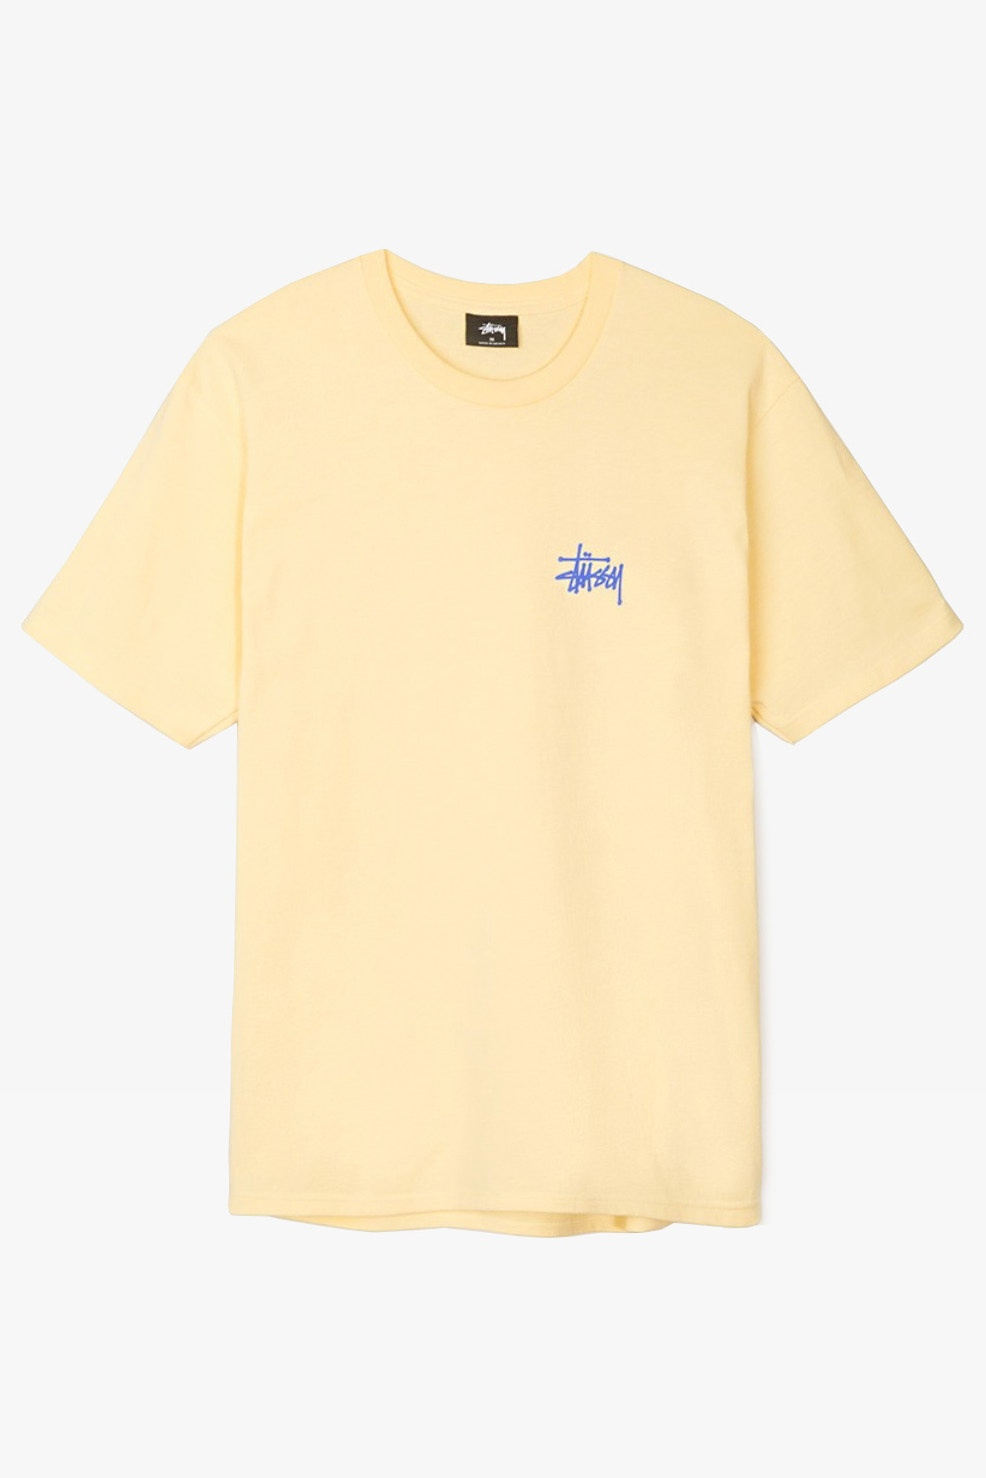 http---bae.hypebeast.com-files-2017-07-stussy-2017-july-releases-3